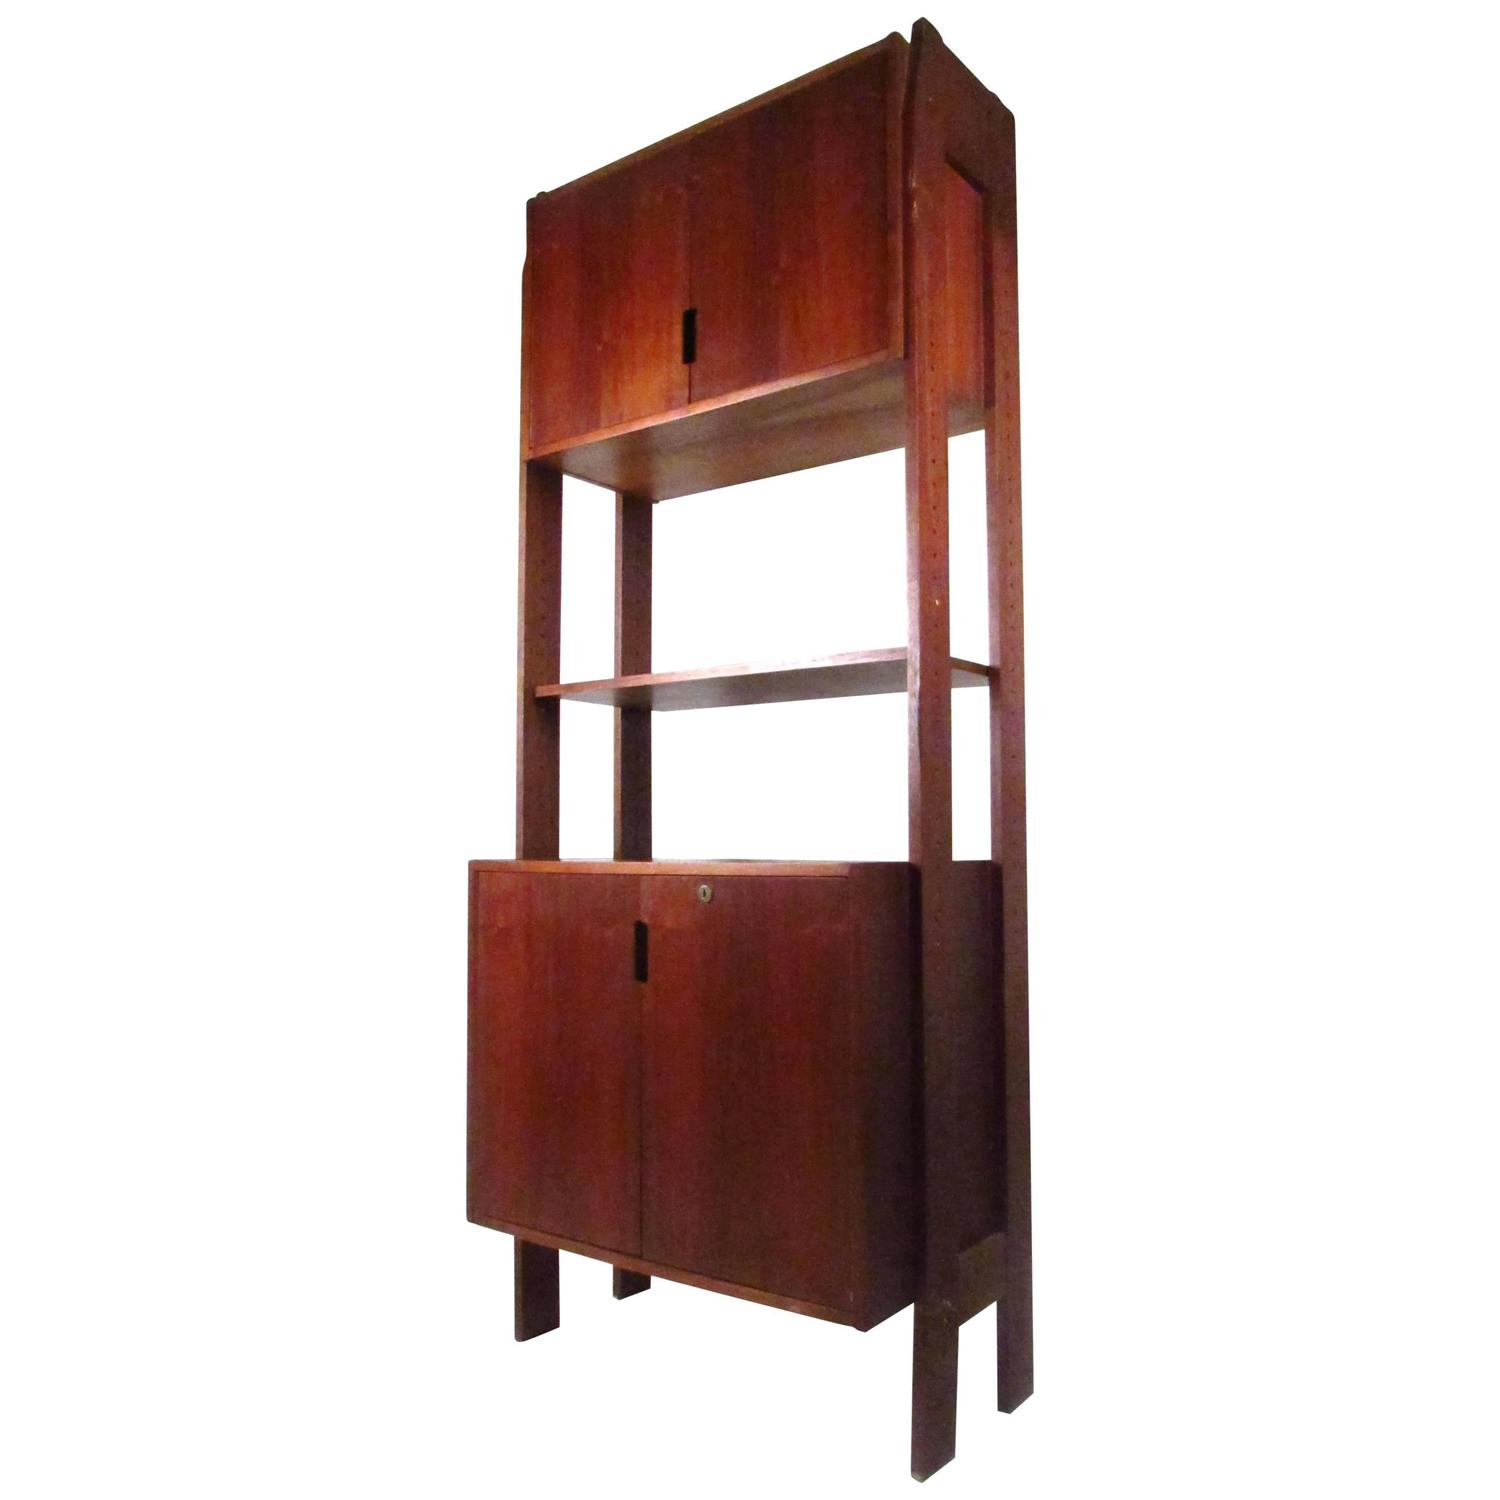 mid century modern freestanding bookshelf with cabinet for sale at 1stdibs - Free Standing Bookshelves